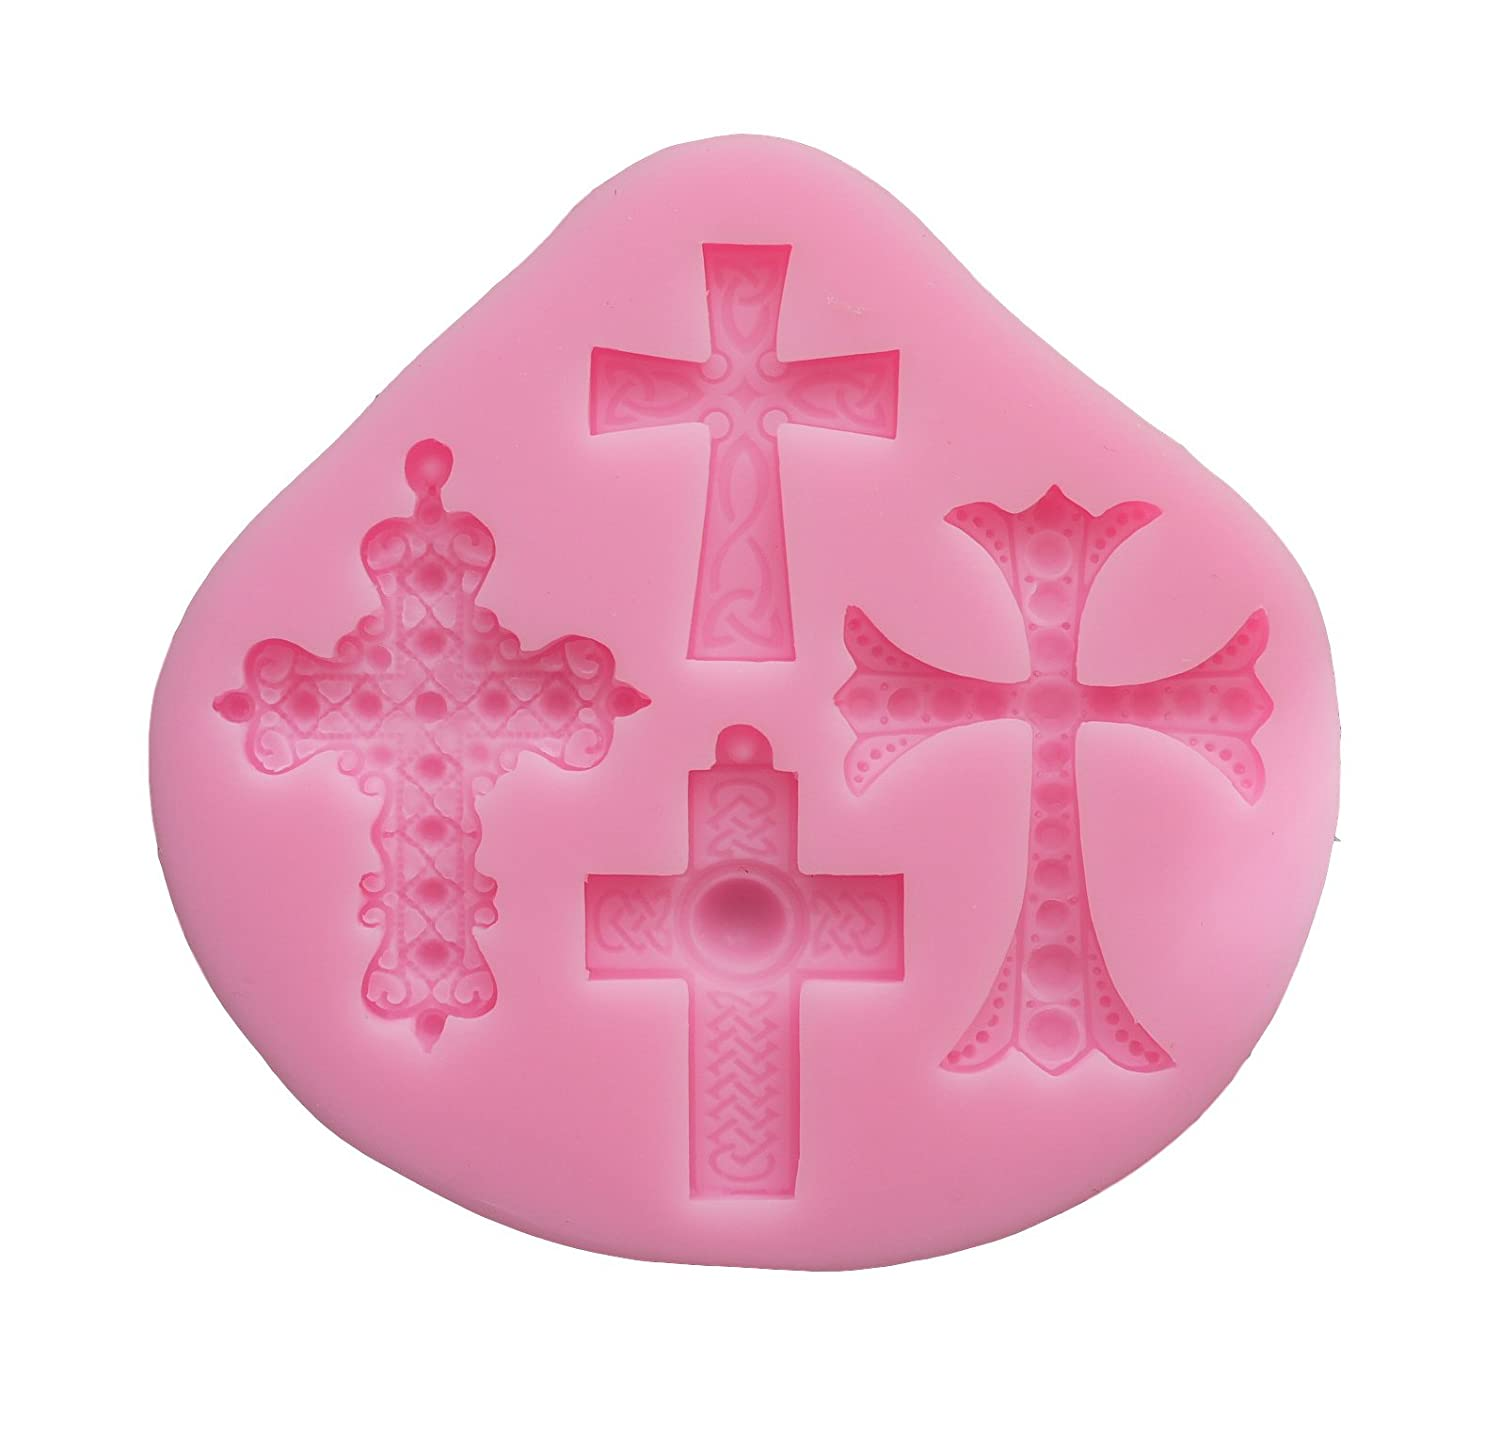 [Ever garden cross crucifix jewelry accessories parts create silicon mold / handmade soap / resin clay / resin / silicon mold / die-cut type / kit tool (Type 2)